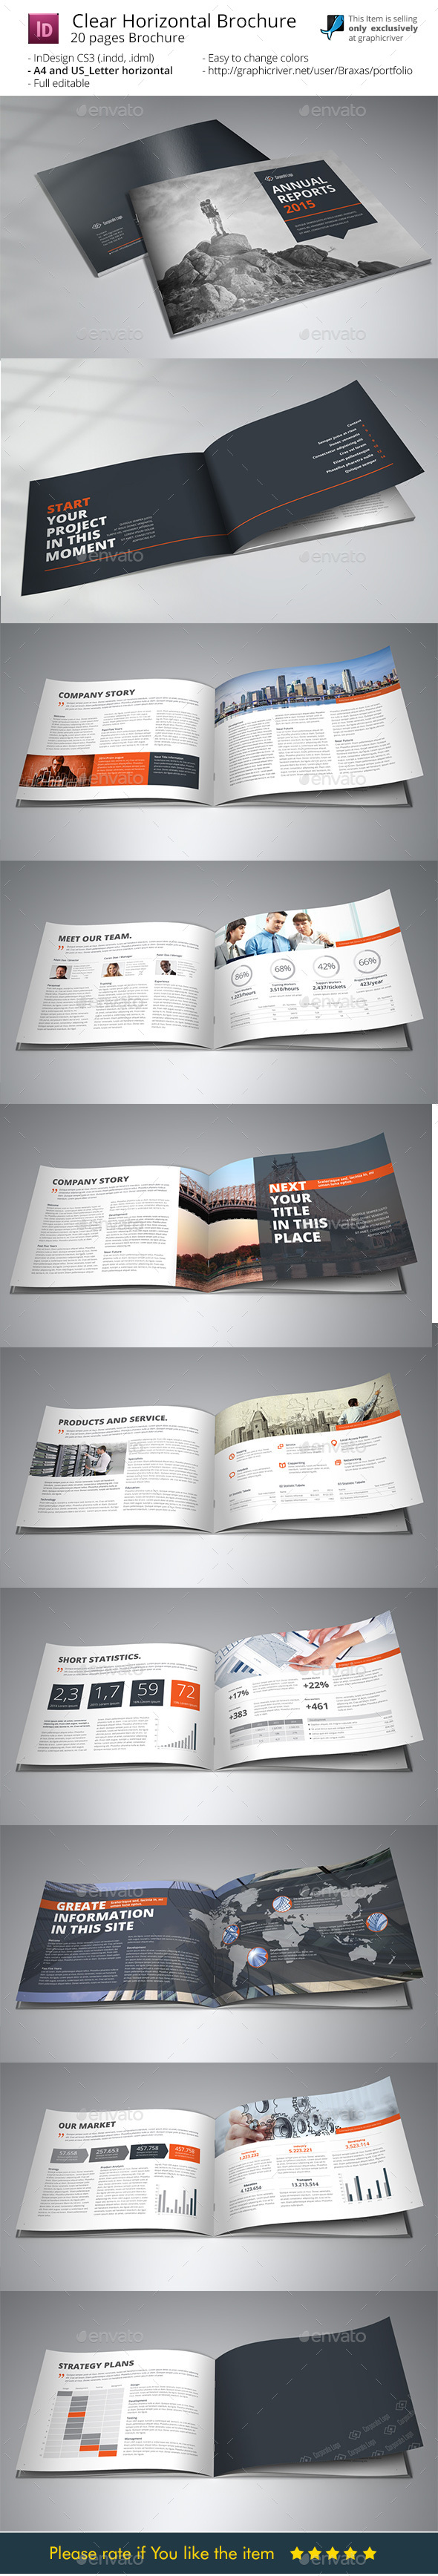 Clean Horizontal Brochure - Indesigne Template by Braxas ...